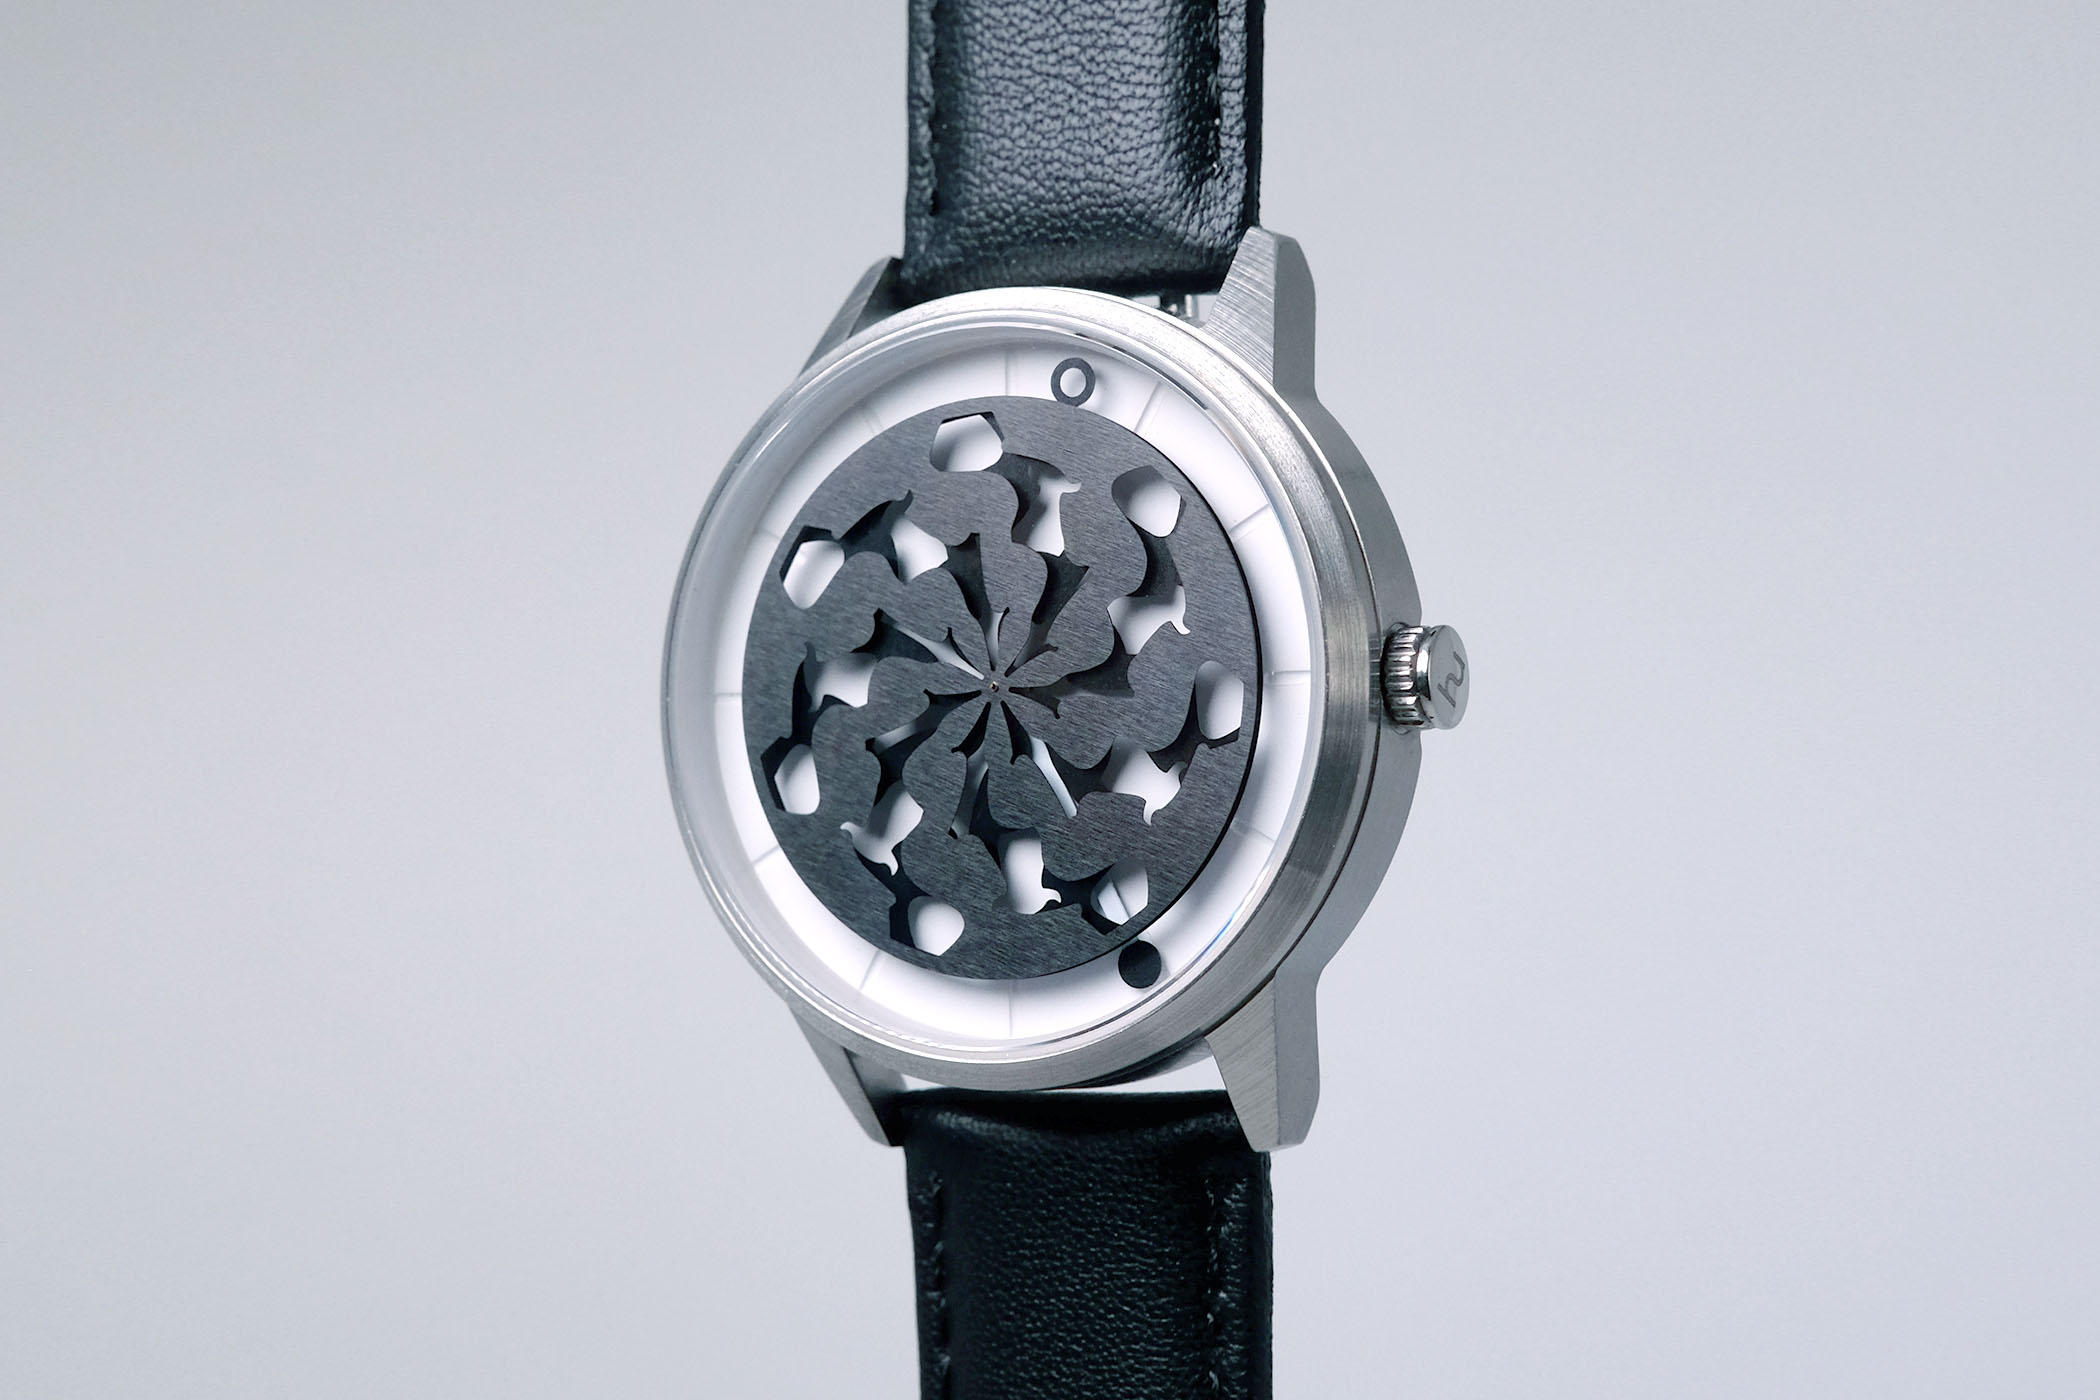 Humism Kinetic Art Automatic Watches - 2